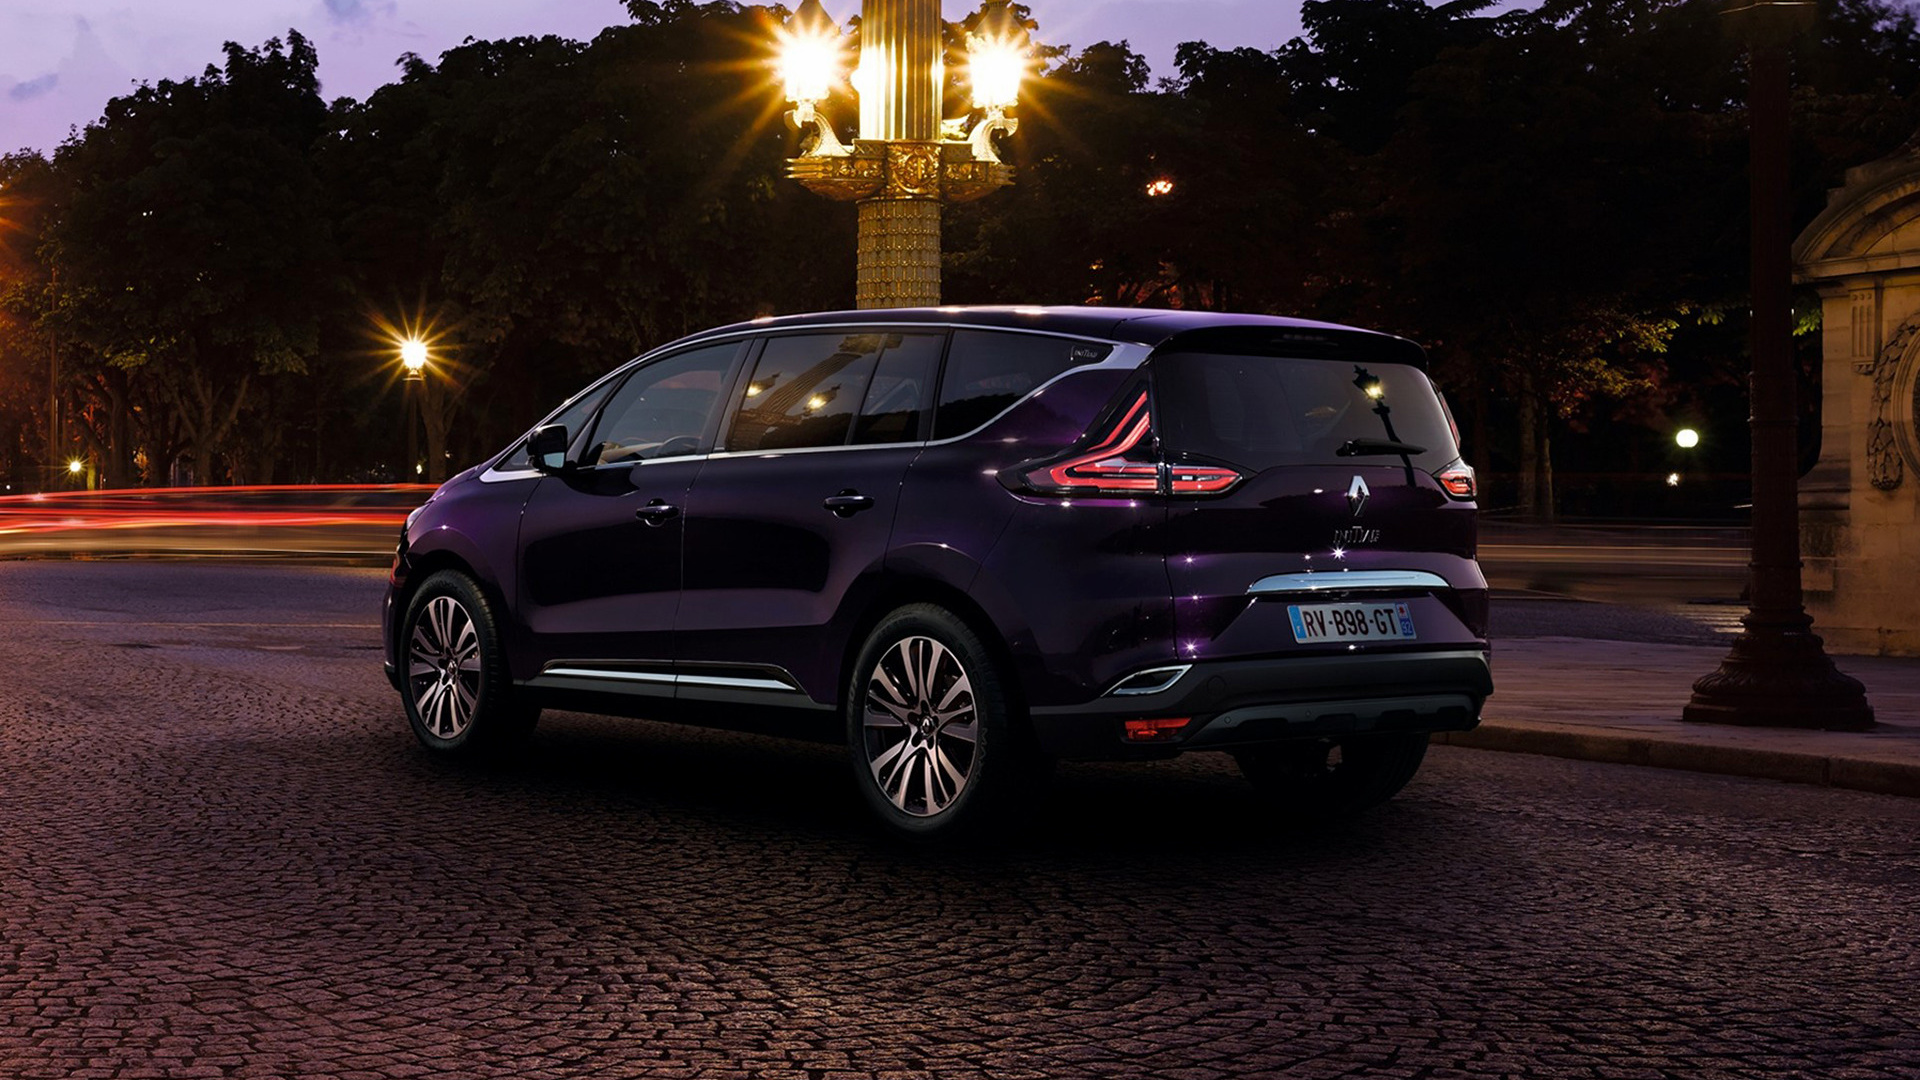 2015 Renault Espace Initiale Paris - Wallpapers and HD ...